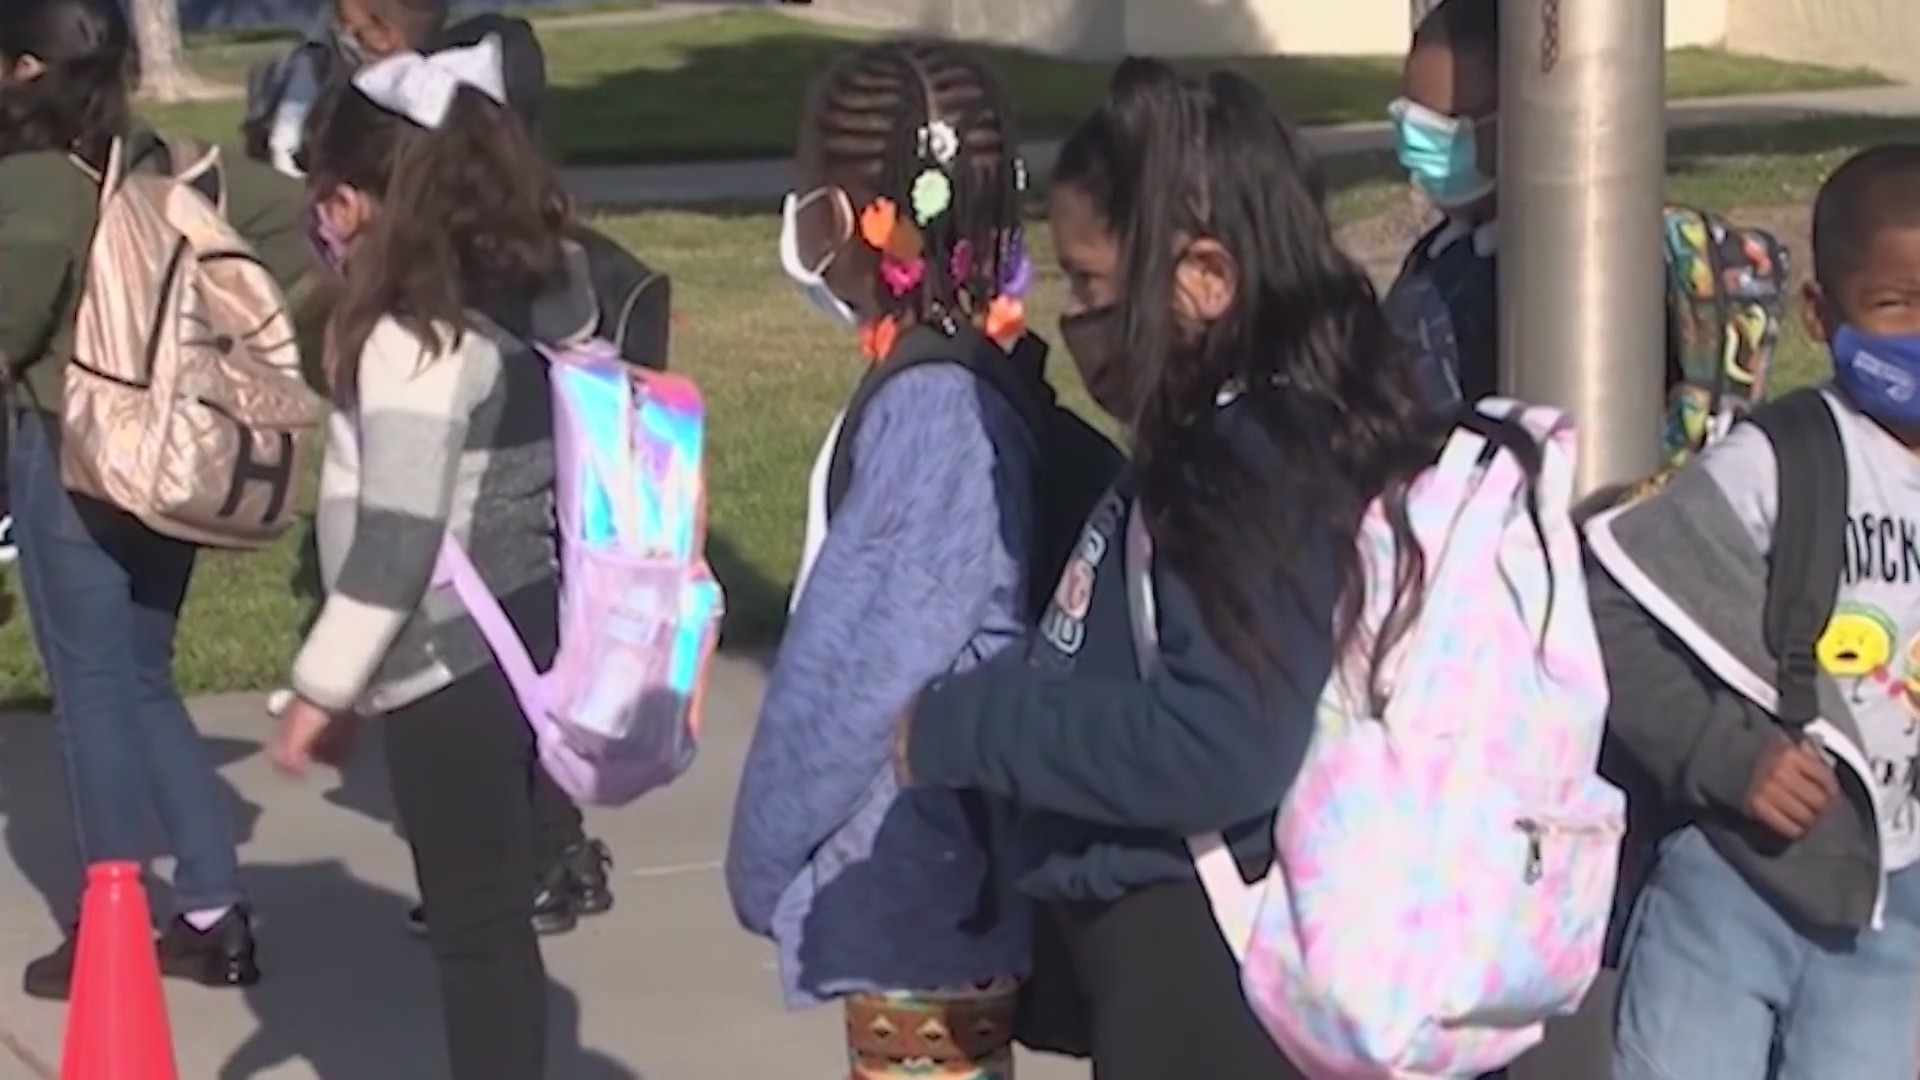 Youth COVID-19 cases rising, Fresno County health officials sound alarm on delta variant